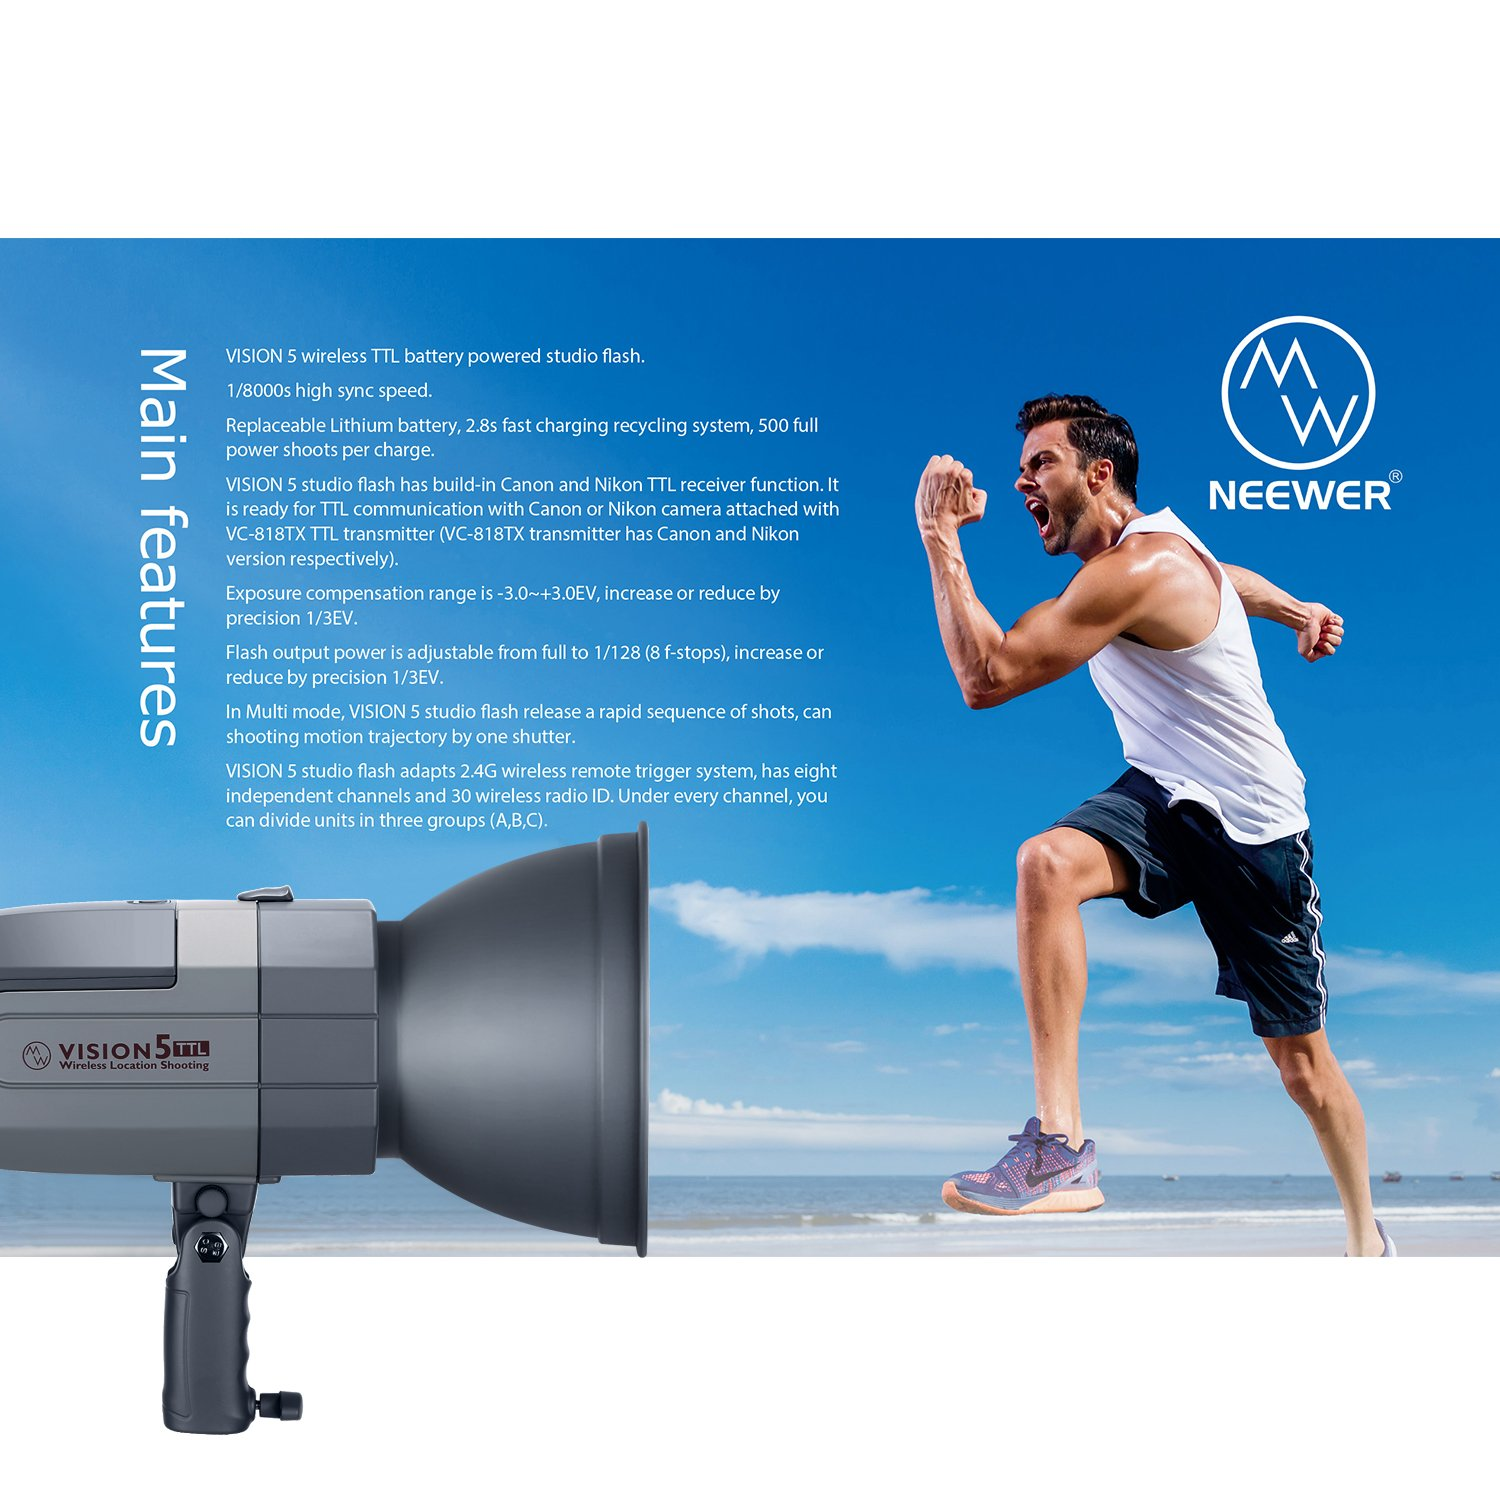 Neewer Vision5 400W TTL for NIKON HSS Outdoor Studio Flash Strobe with 2.4G System and Wireless Trigger,2 Packs Li-ion Battery(up to 500 Full Power Flashes),German Engineered,3.96 Pounds,Bowens Mount by Neewer (Image #2)